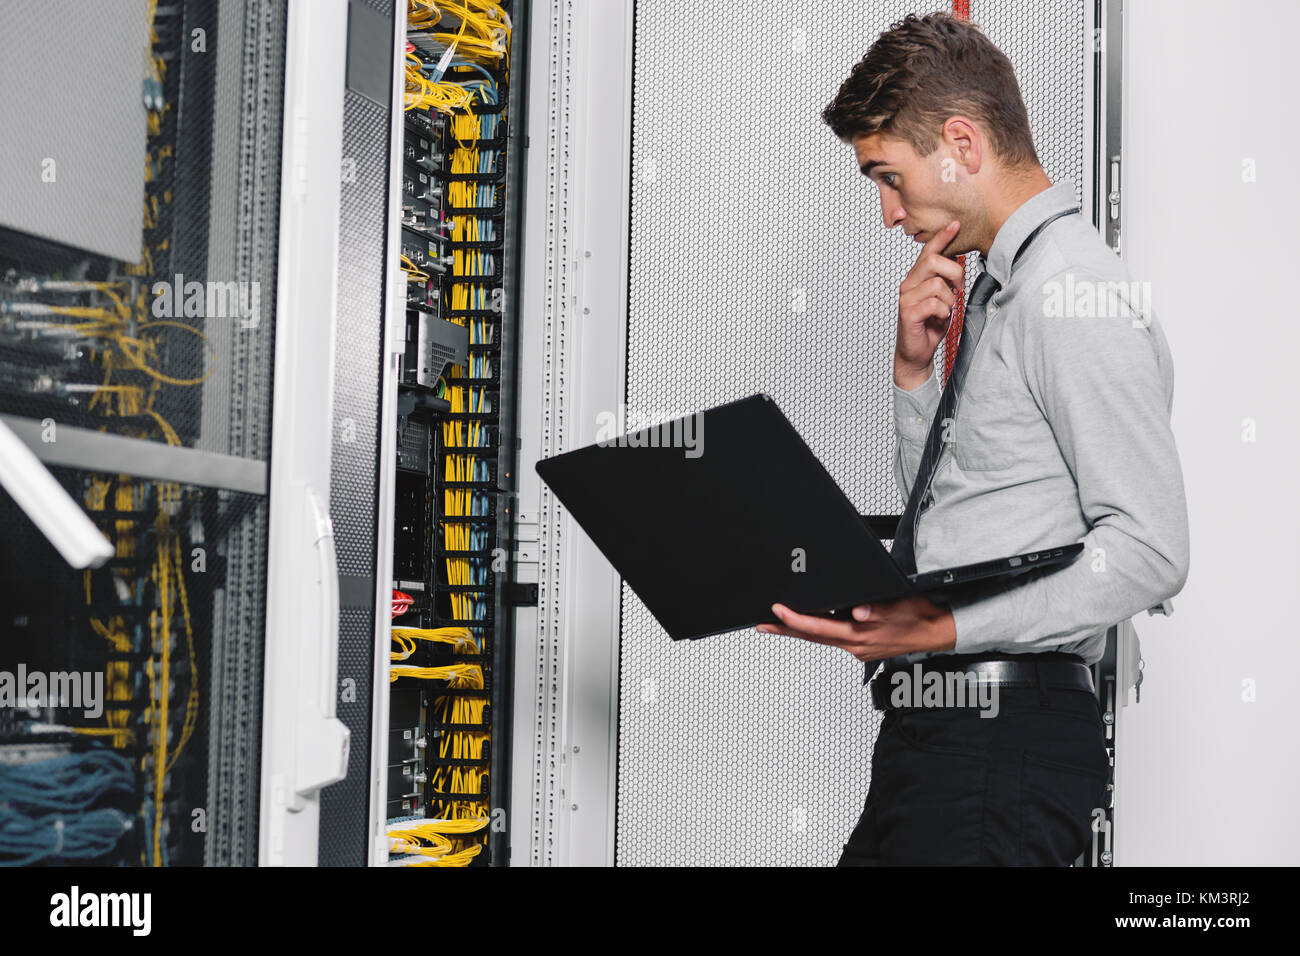 Portrait of modern young man holding laptop standing in server room working with supercomputer - Stock Image